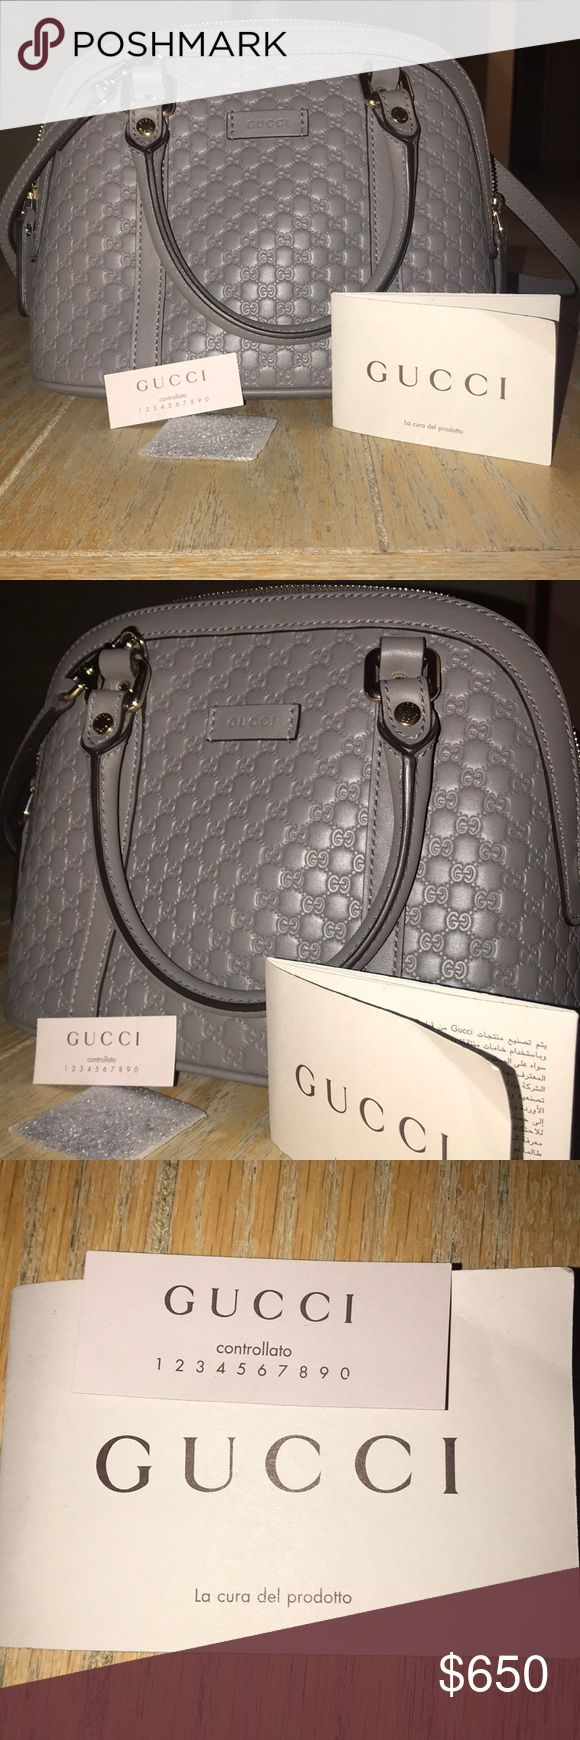 GUCCI Microguccissima Mini Dome Bag color-Grey -Gray  -mini bag  -comes with shoulder strap Gucci Bags Mini Bags